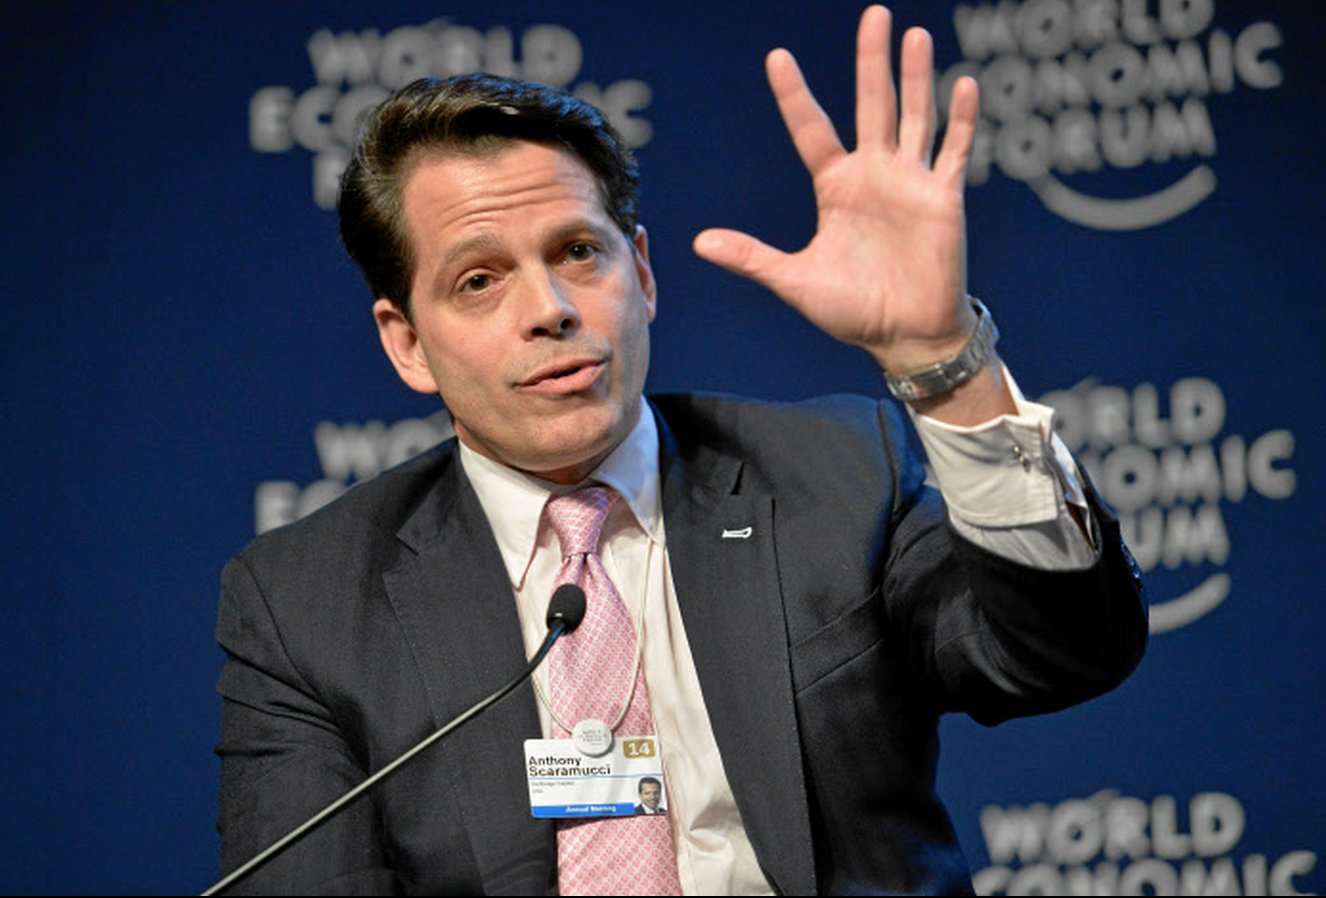 City Pulse On the Air Oct. 20: Anthony Scaramucci, Zombie Walk and Samskee.